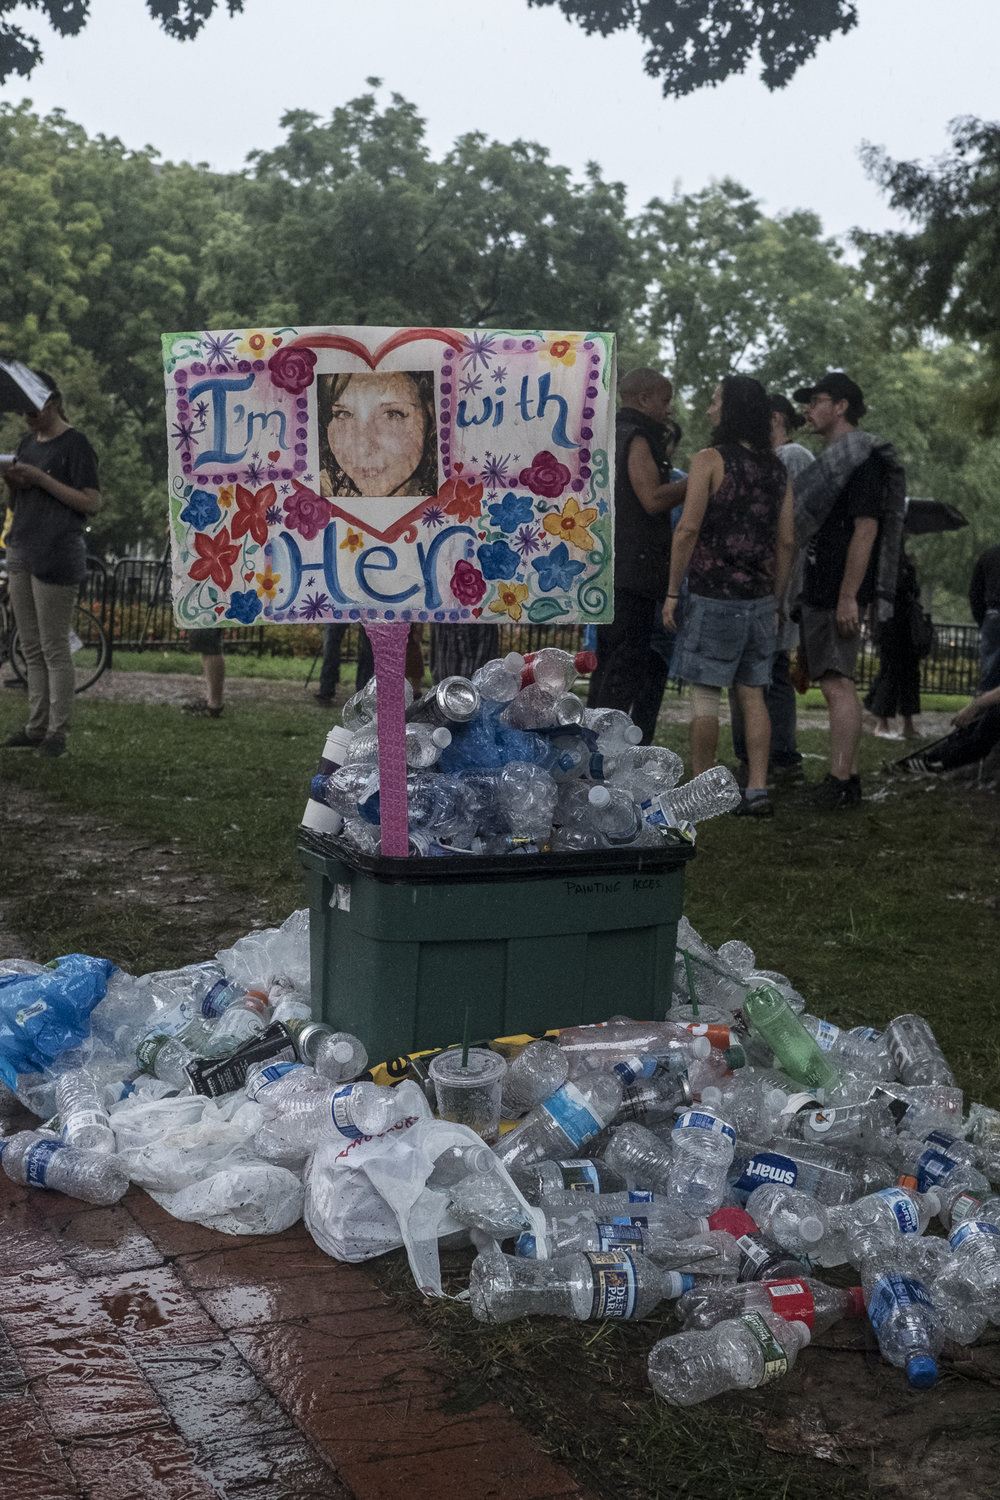 A protest sign with image of Heather Heyer who died during the Unite The Right rally in Charlottesville the year before stands among discarded plastic bottles in Lafayette Park.